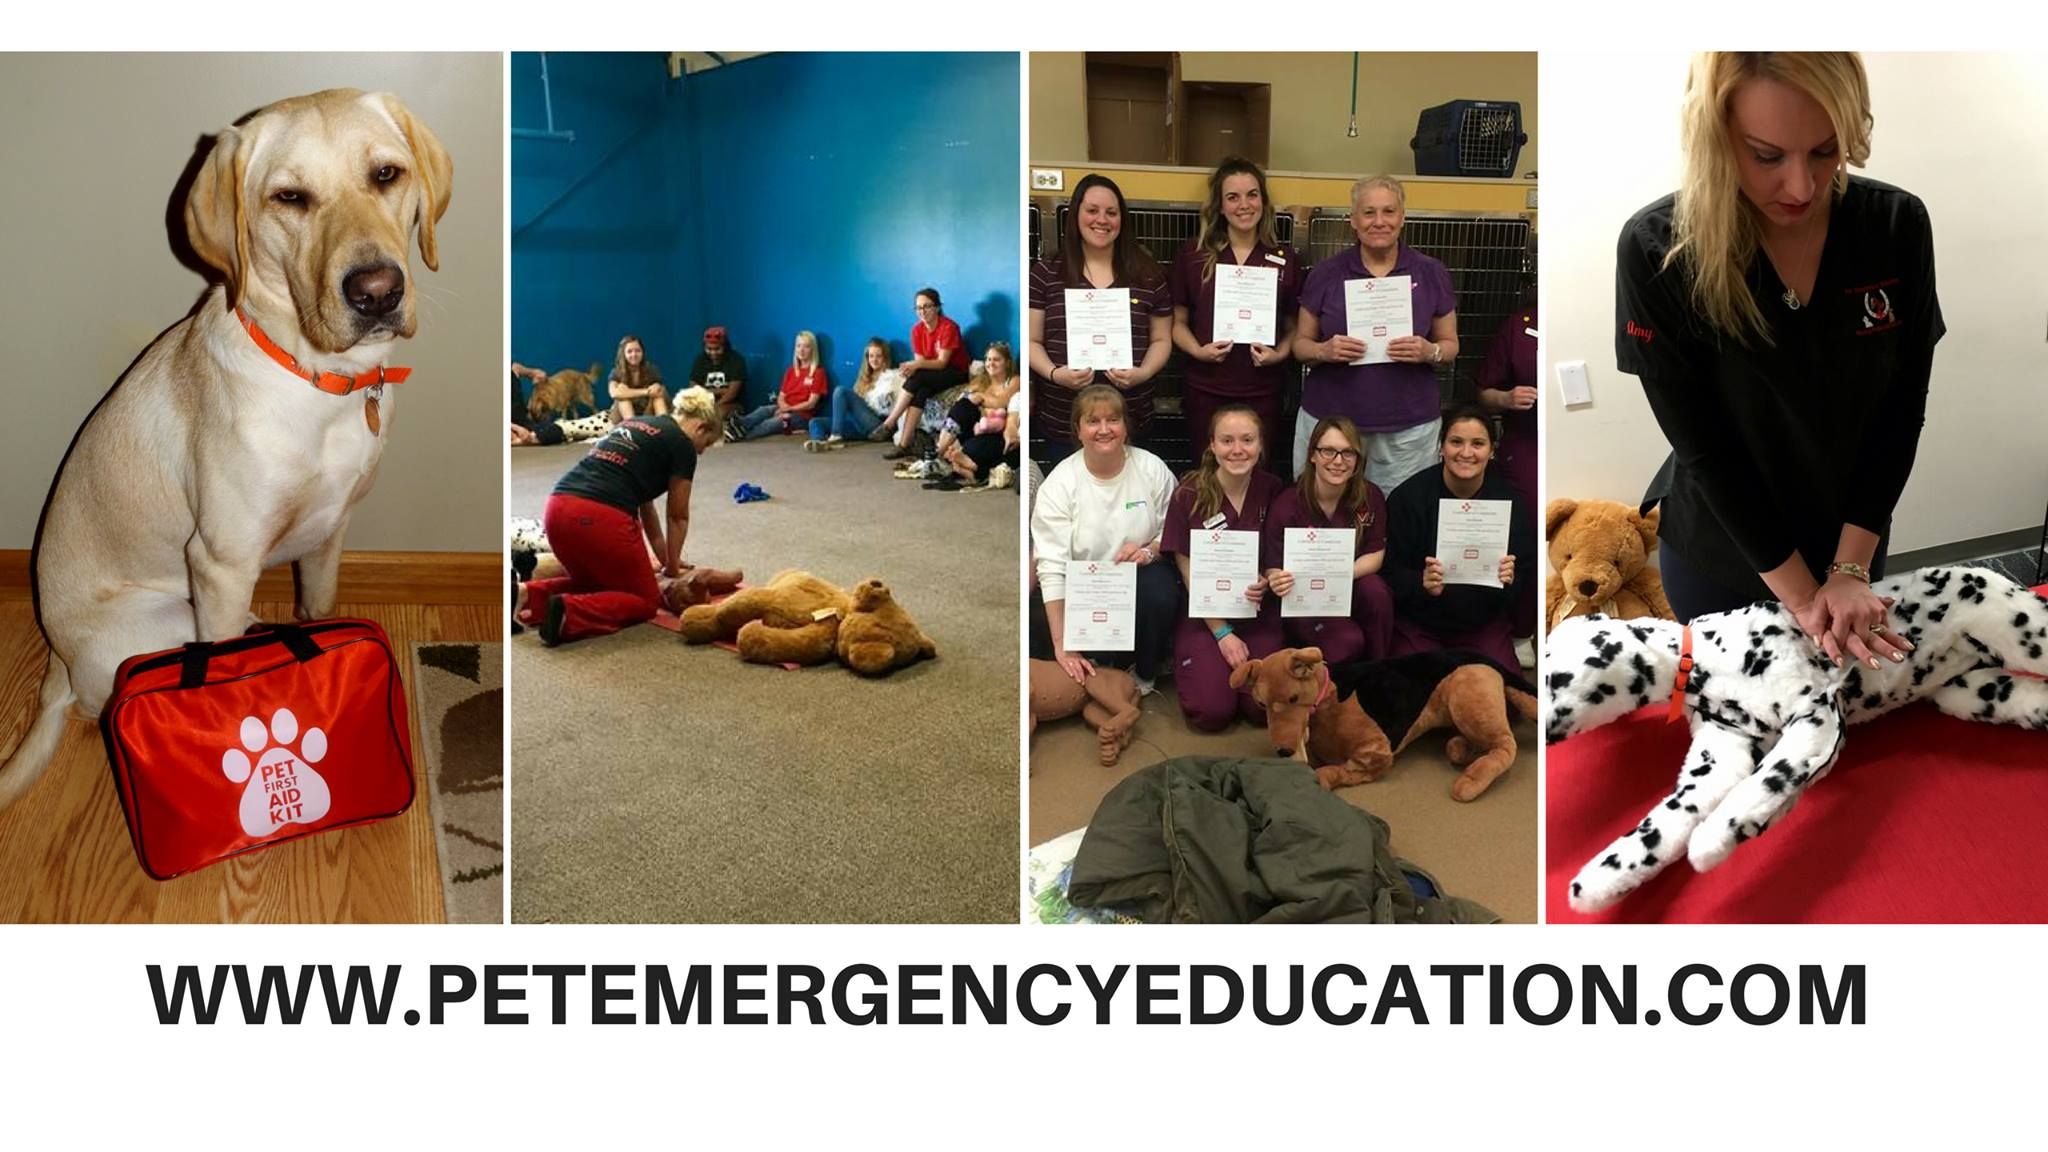 Pet cpr and first aid certification class bow chika wow town become certified in canine and feline cpr and first aid the instructors from pet emergency education are nationally recognized for providing pet cpr xflitez Image collections